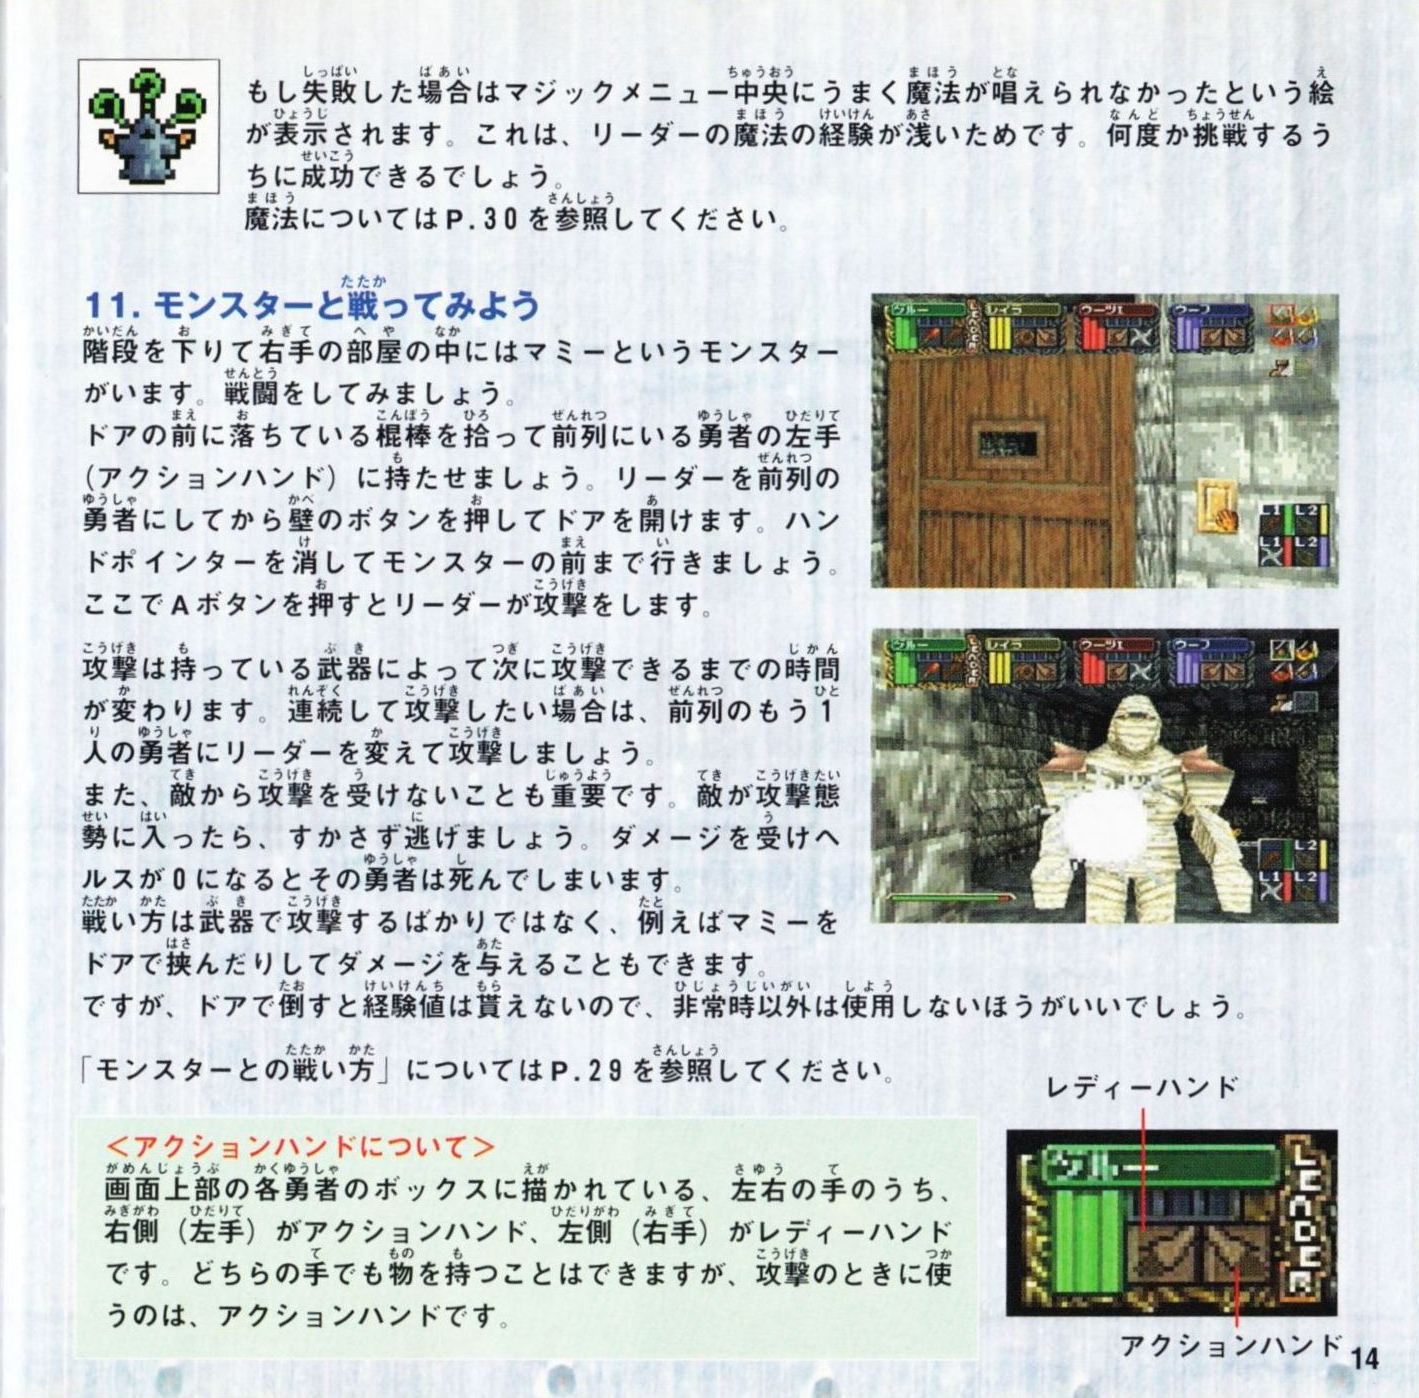 Game - Dungeon Master Nexus - JP - Sega Saturn - Booklet - Page 015 - Scan